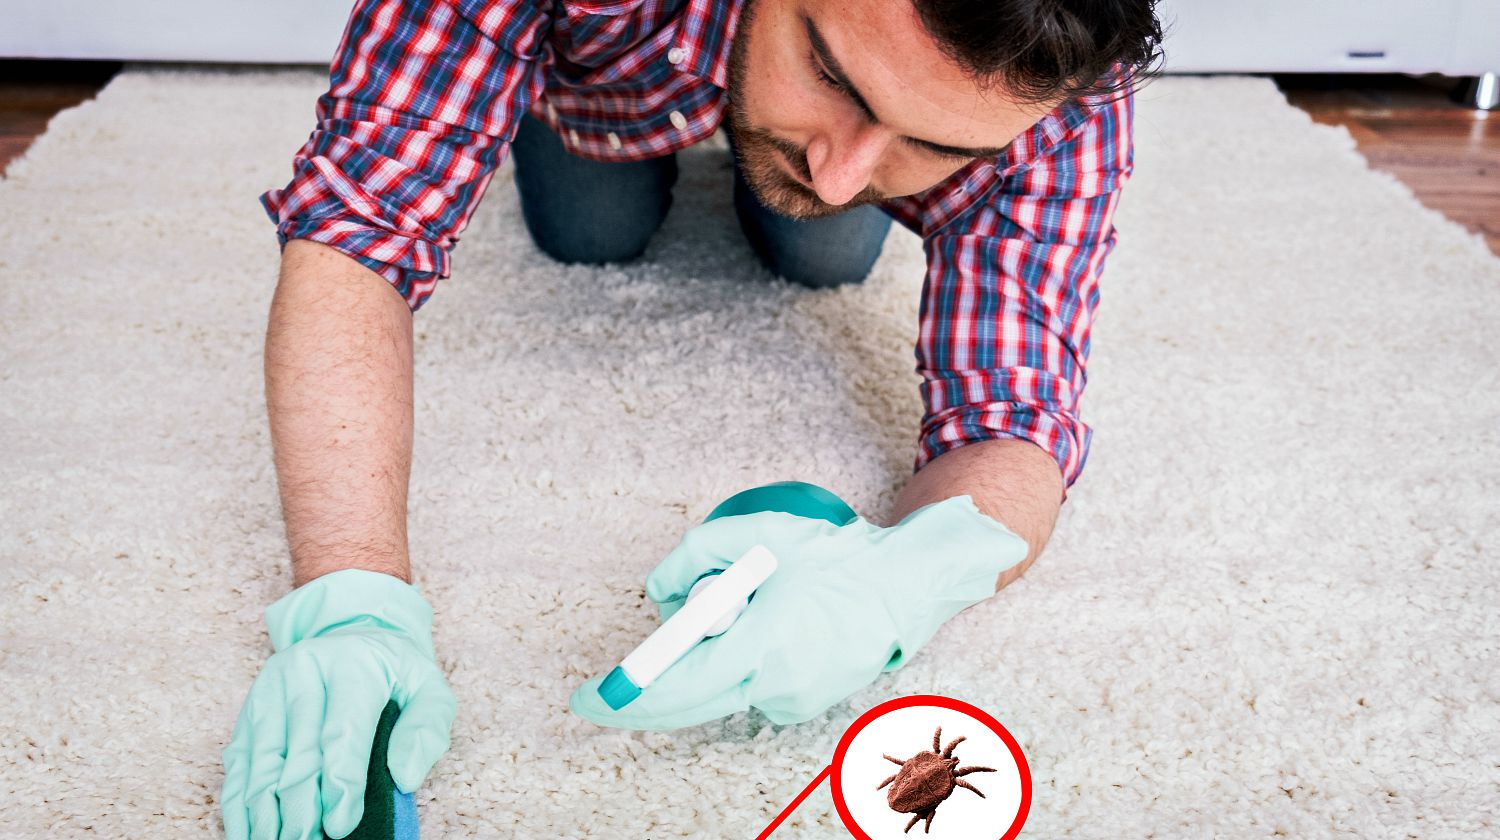 Wiping wooden white carpet and floor with a sponge | Natural Remedies To Get Rid Of Fleas In And Around Your Home | Featured